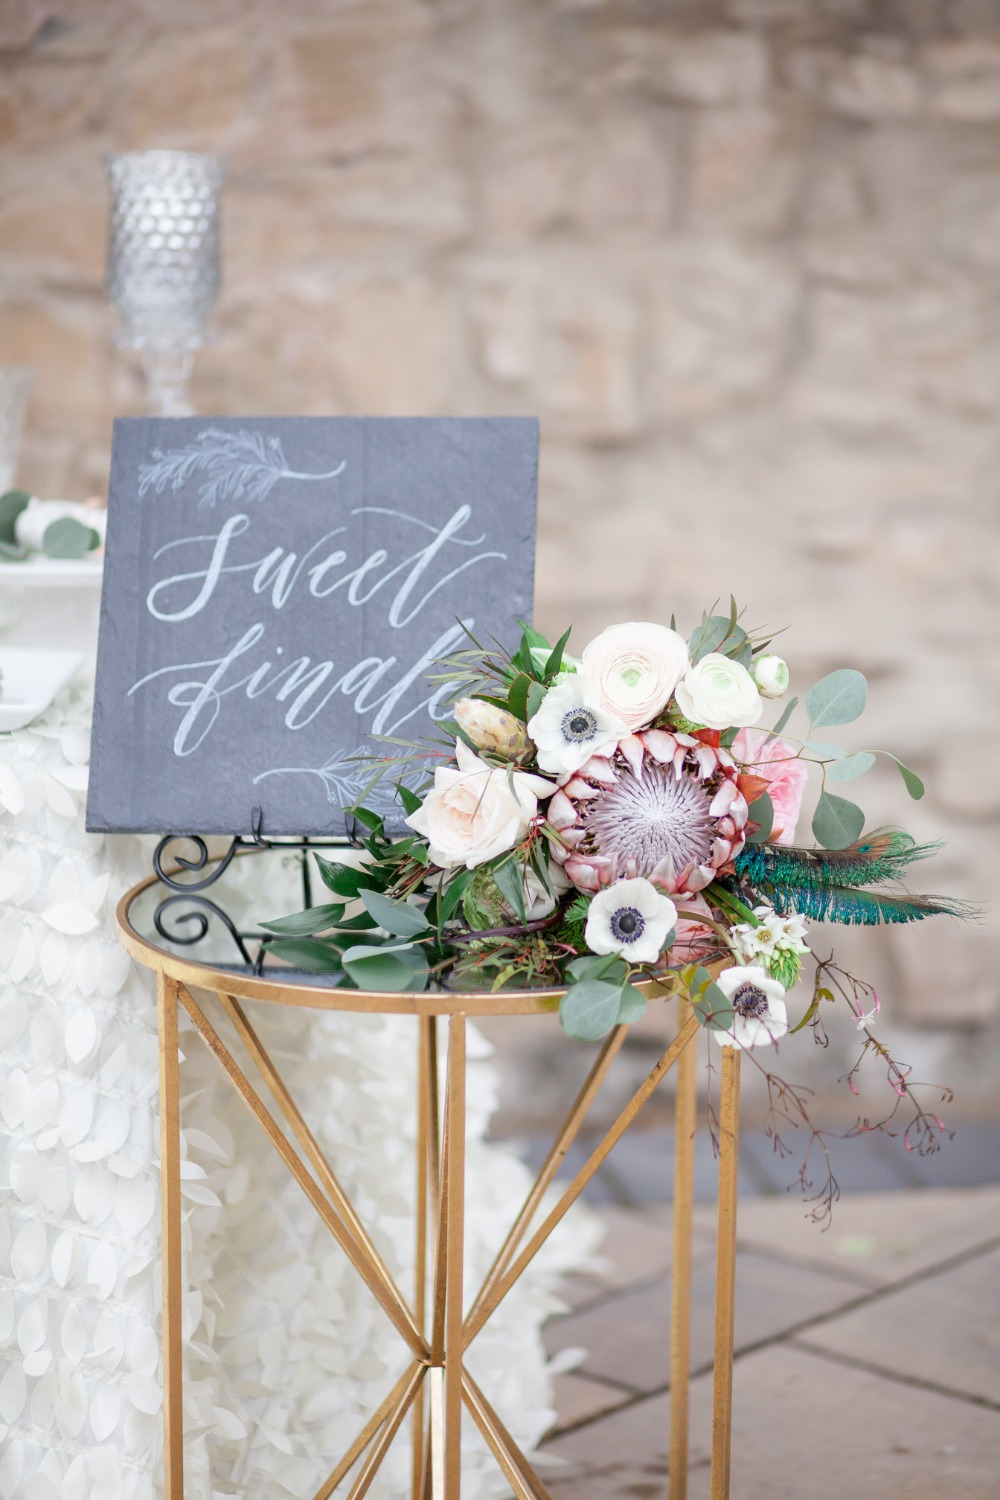 sweet finale wedding sign